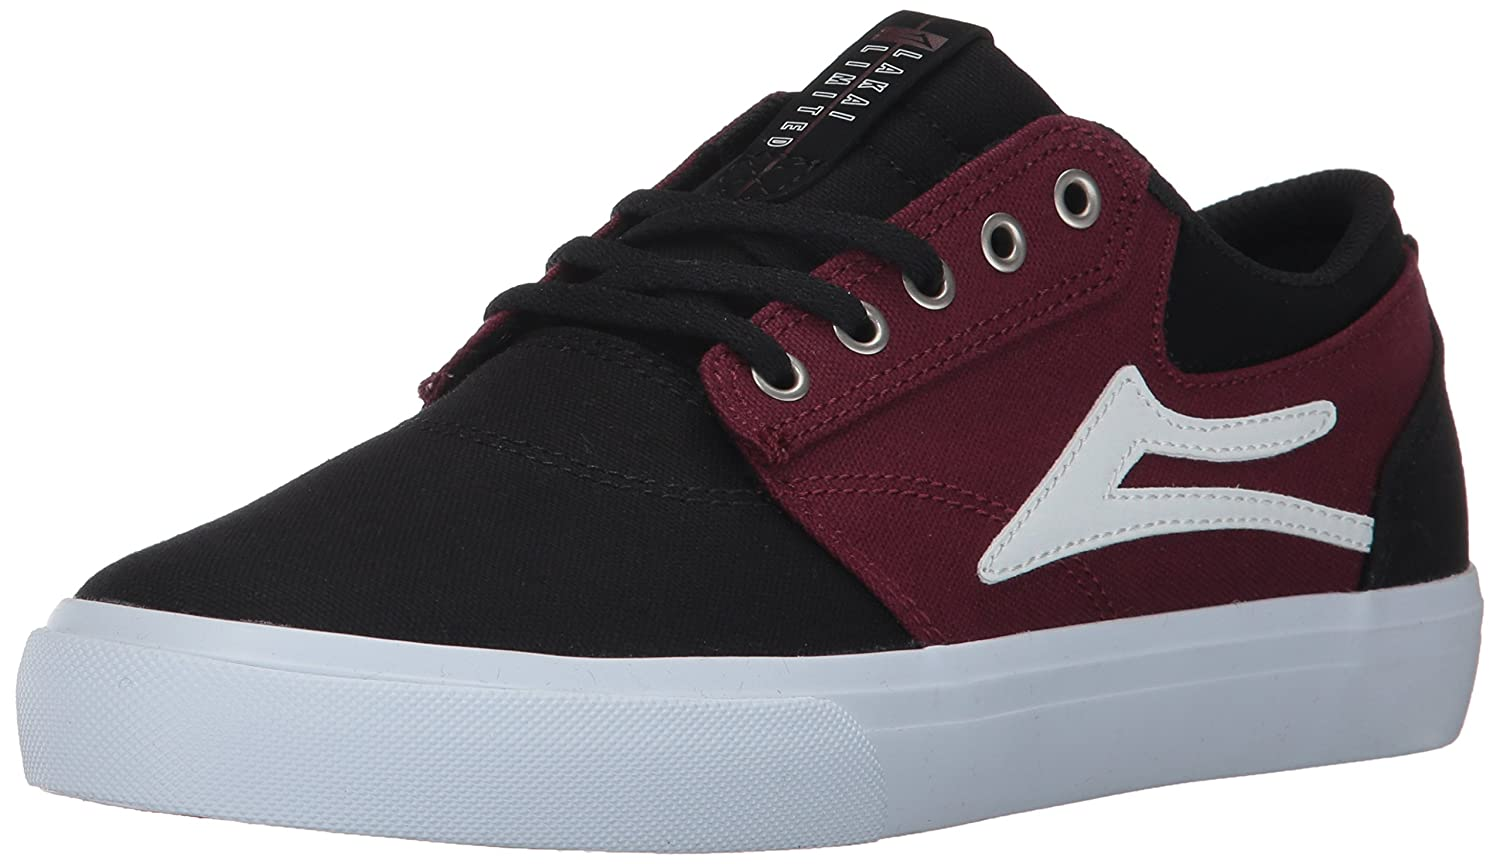 Lakai Griffin Skate Shoe B01N5OZKMW 11.5 M US|Port Canvas